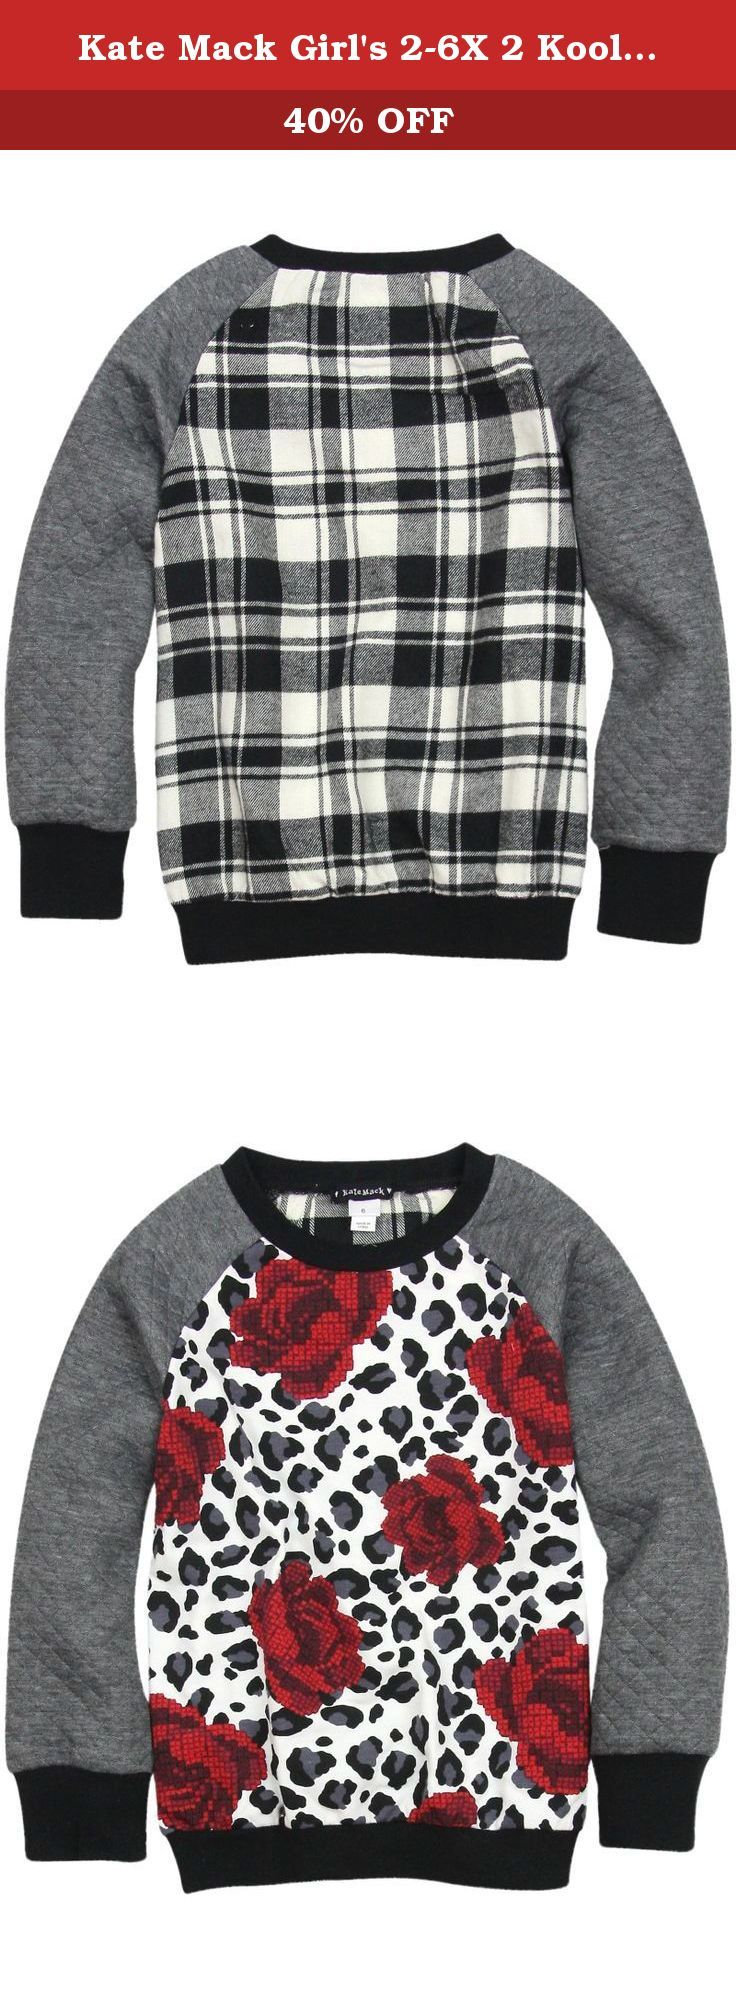 Kate Mack Girl's 2-6X 2 Kool 4 School Sweatshirt, Multi - Size 5. Other than the comfy fit she knows and loves, there's nothing ordinary about this eclectic sweatshirt. Featuring a rose and animal print on the front and a cheery black and ivory plaid on the back, the waffle knit raglan sleeves add an unexpected texture. Sure to jazz up any outfit this season!.